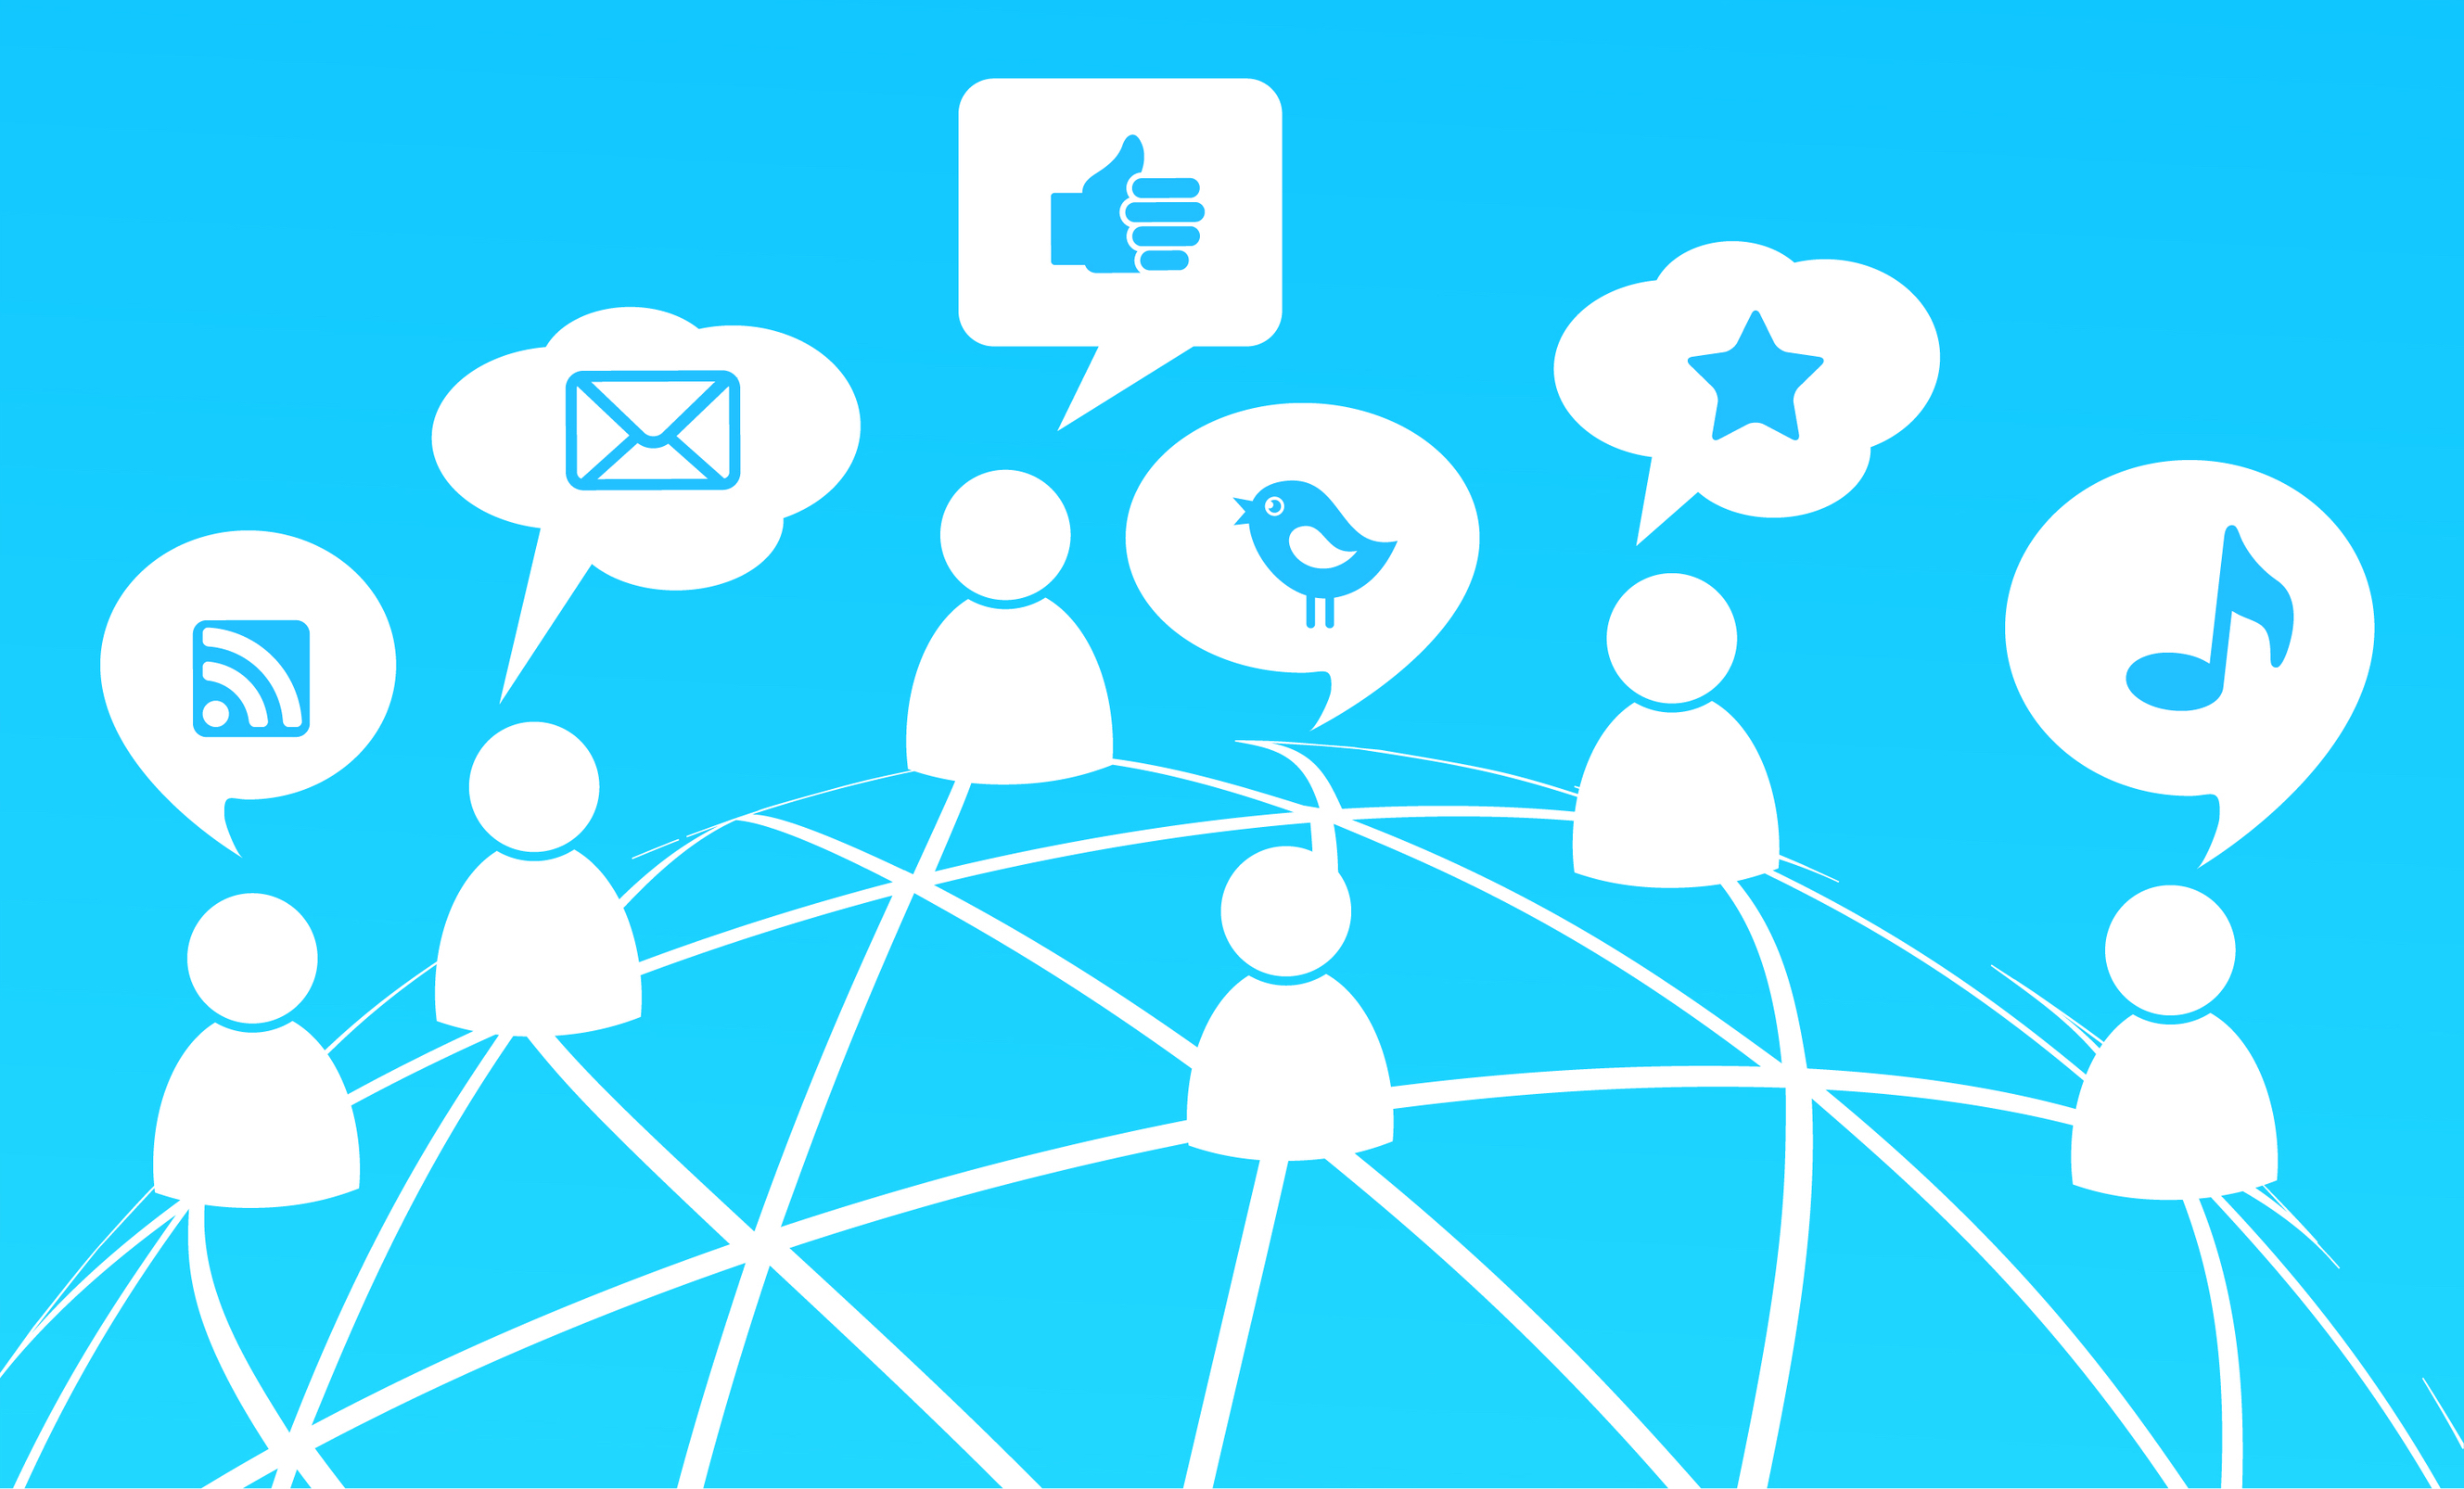 Social network background with media icons, vector illustration